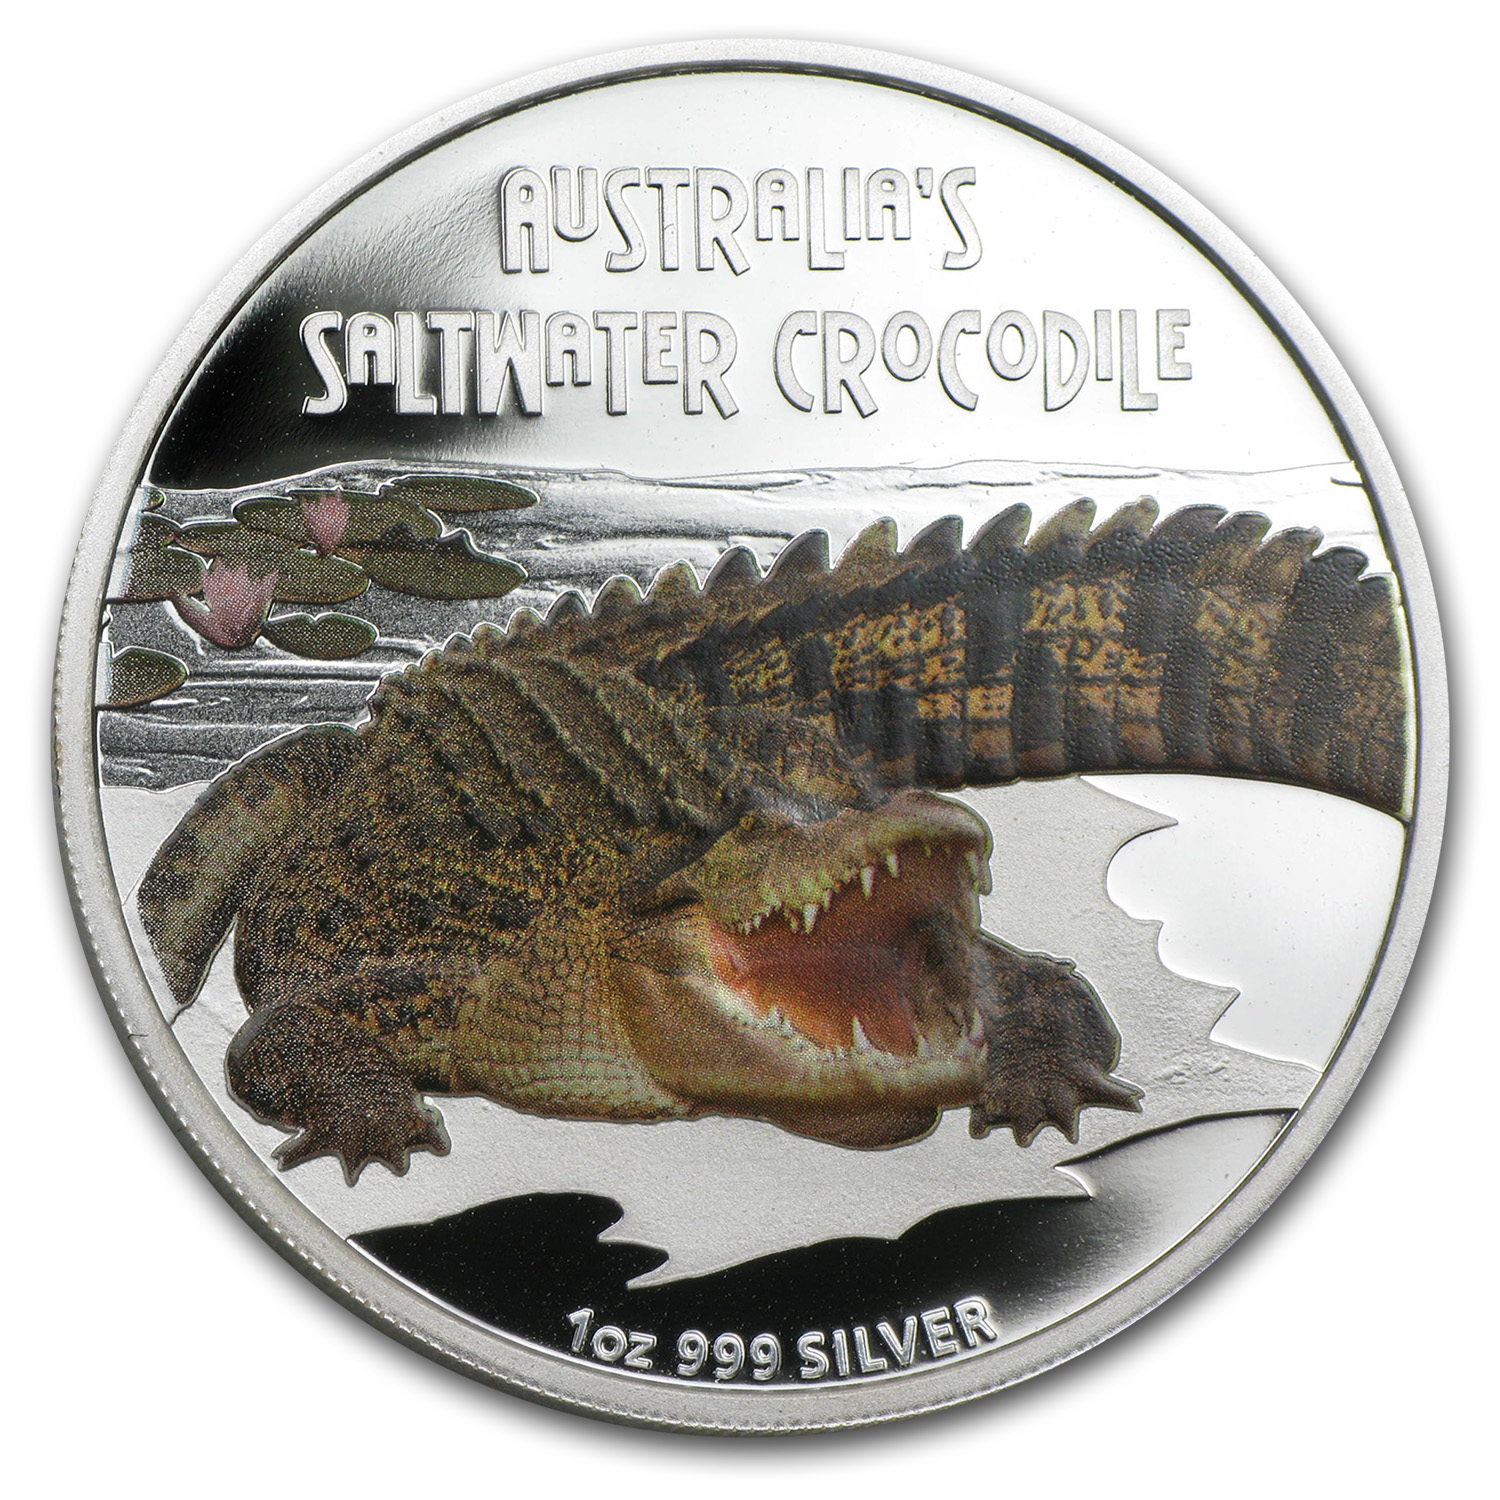 2009 Australia 1 oz Silver Saltwater Crocodile Proof